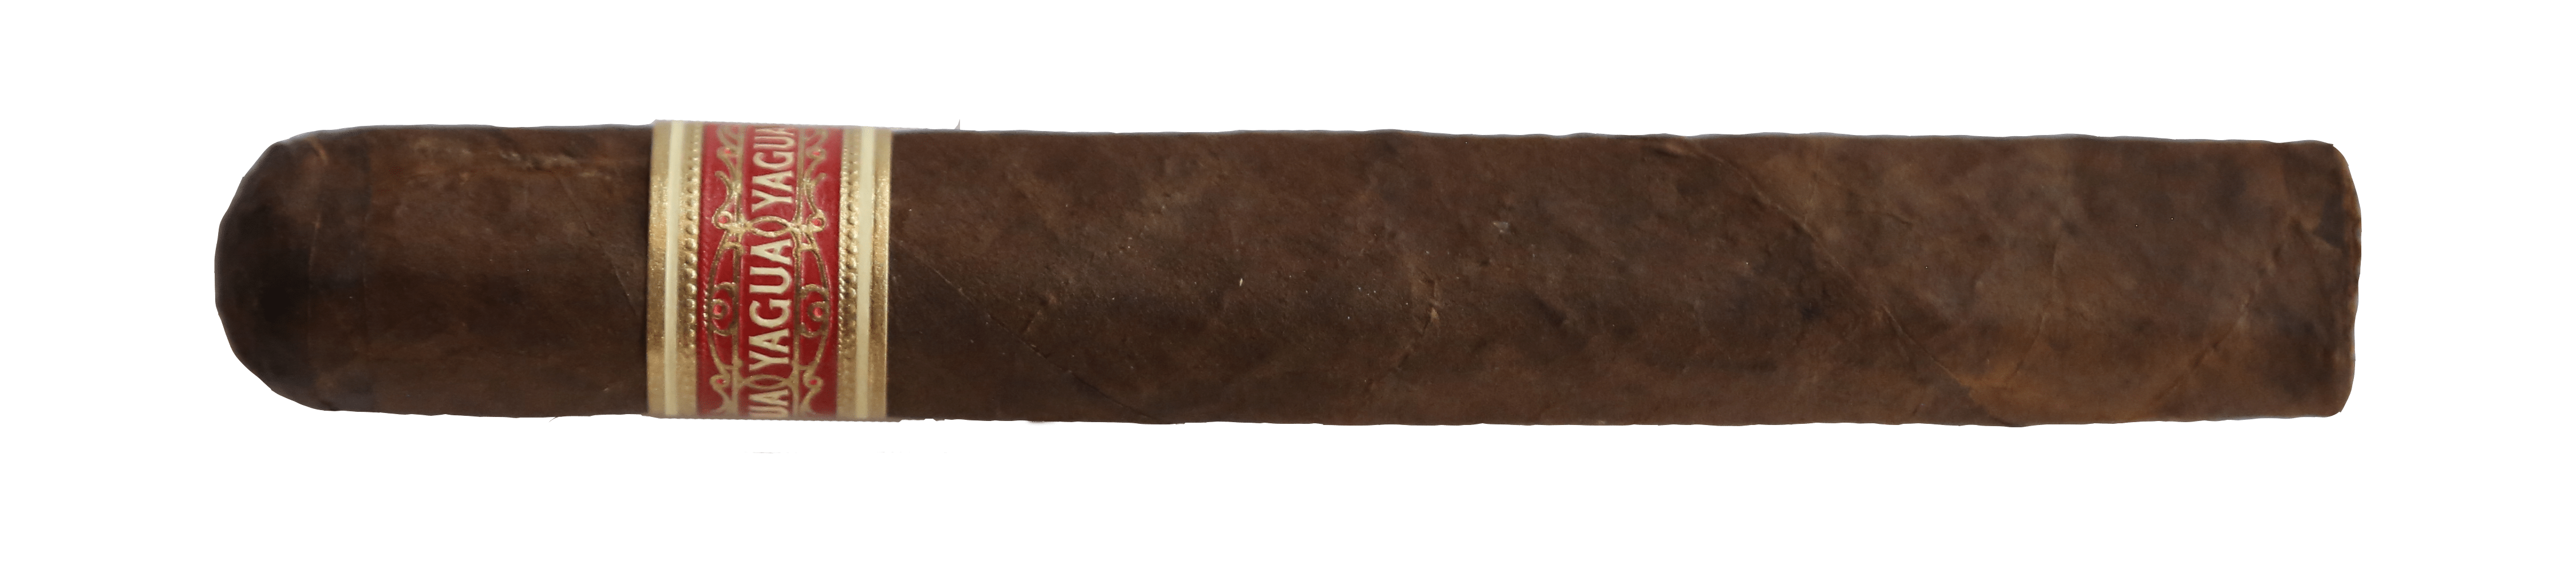 yagua cigar single stick